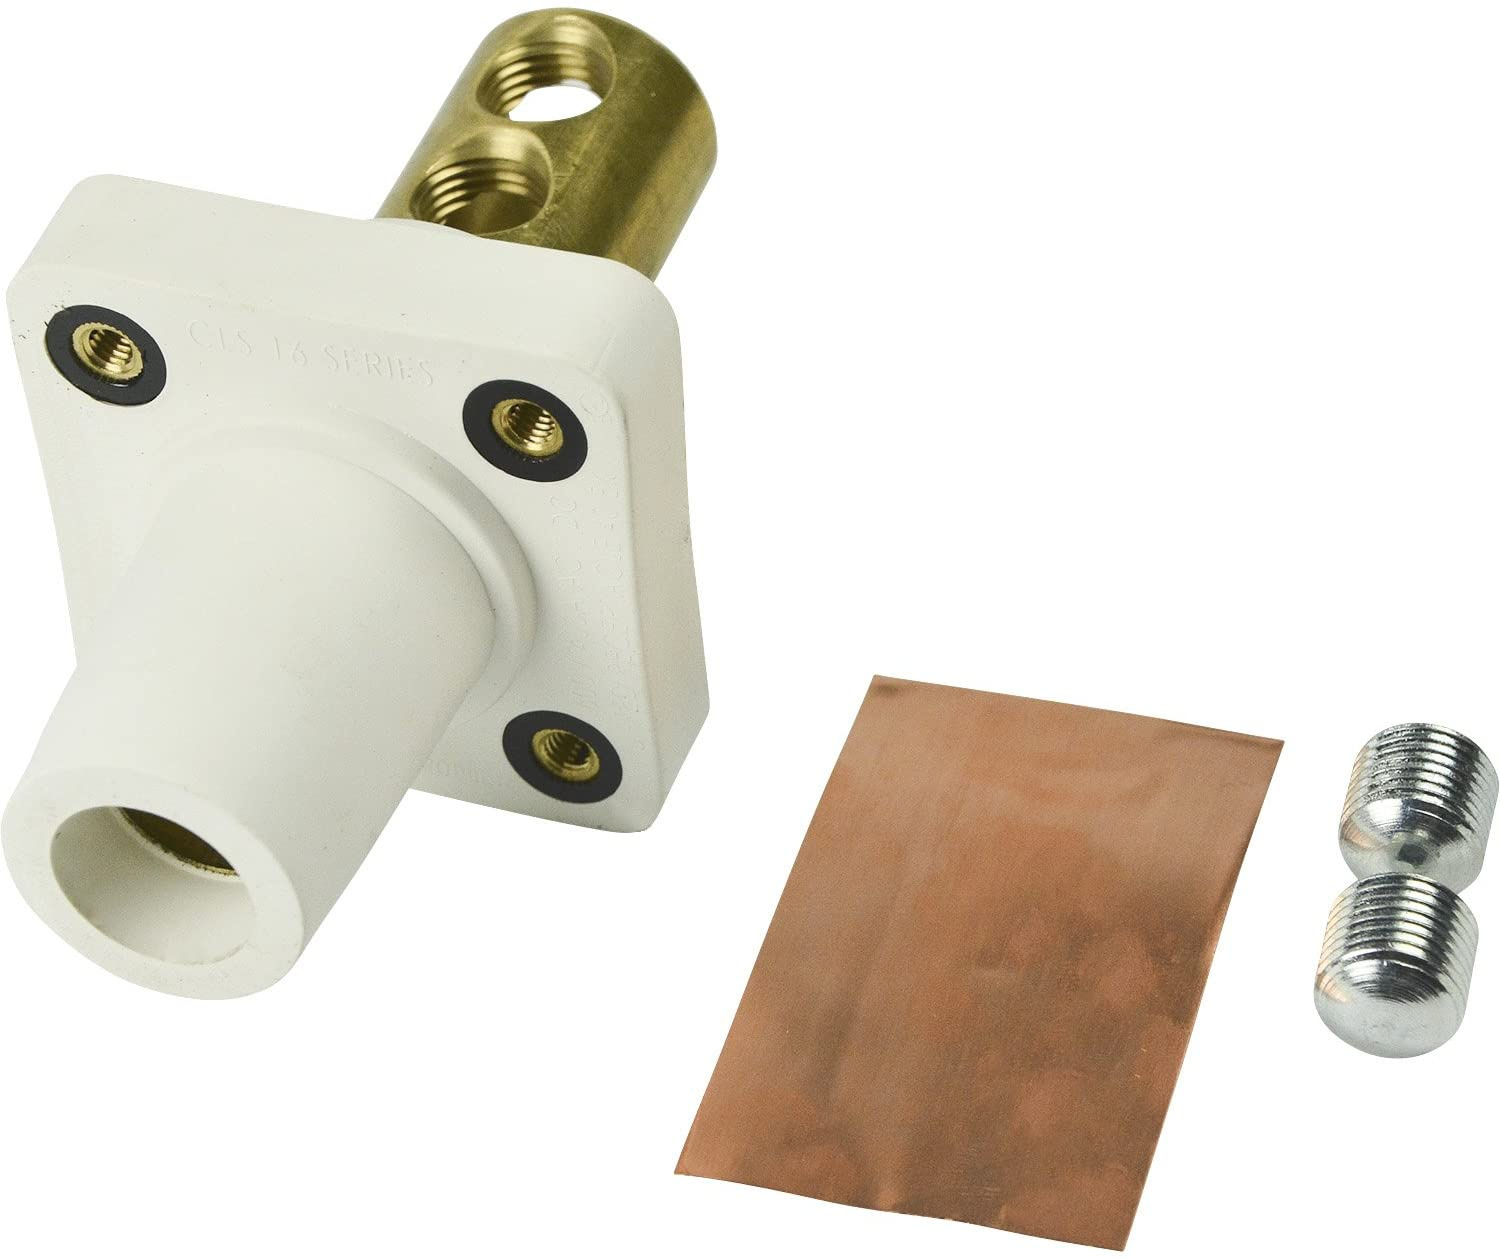 ADI Marinco CLS40FRB-B CLS Series Panel Mount (400A) Double Set Screw WHT